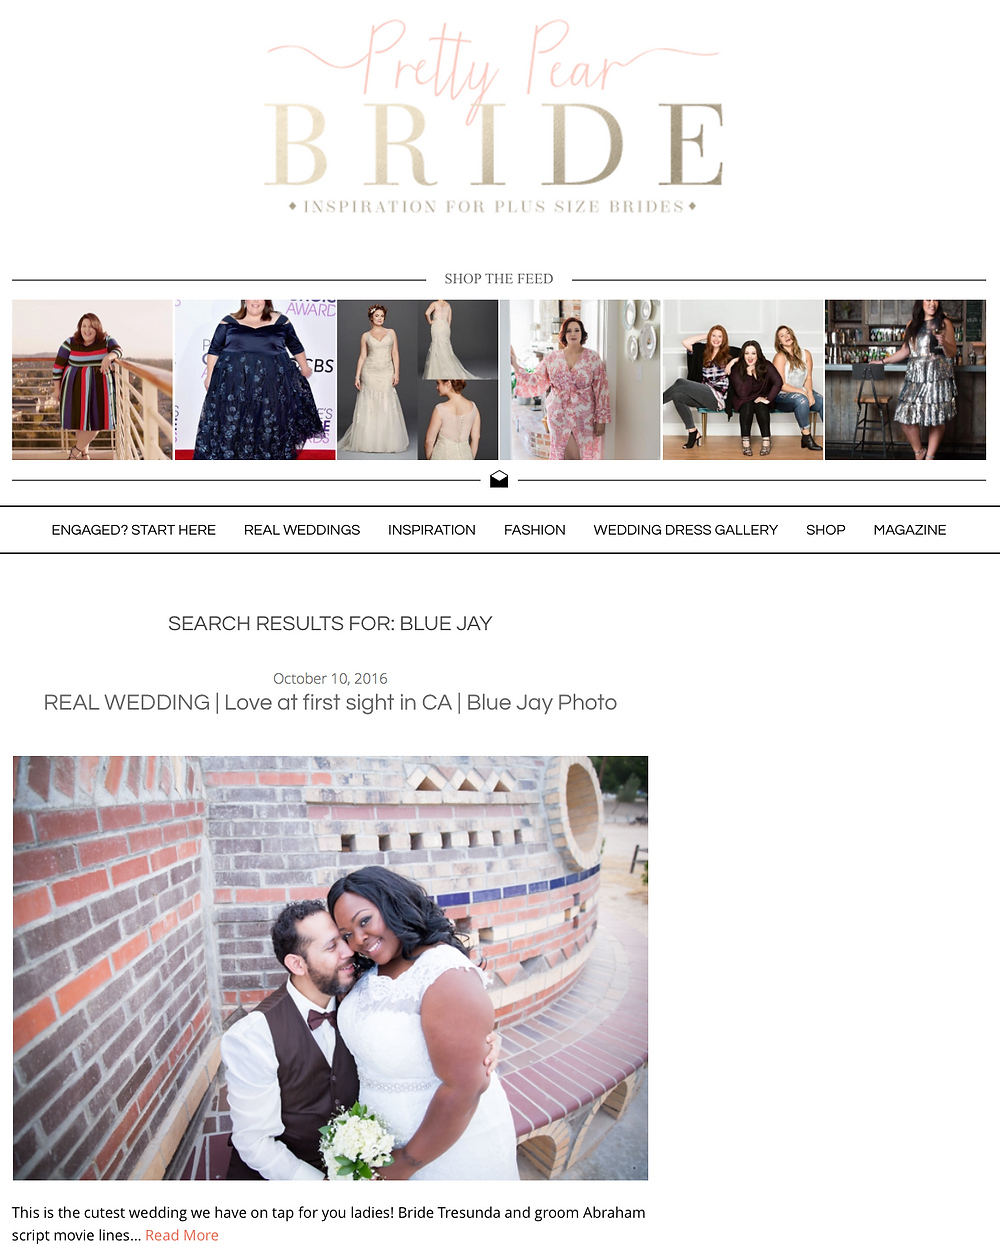 Pretty pear bride full figure bride curvy bride full figure bride